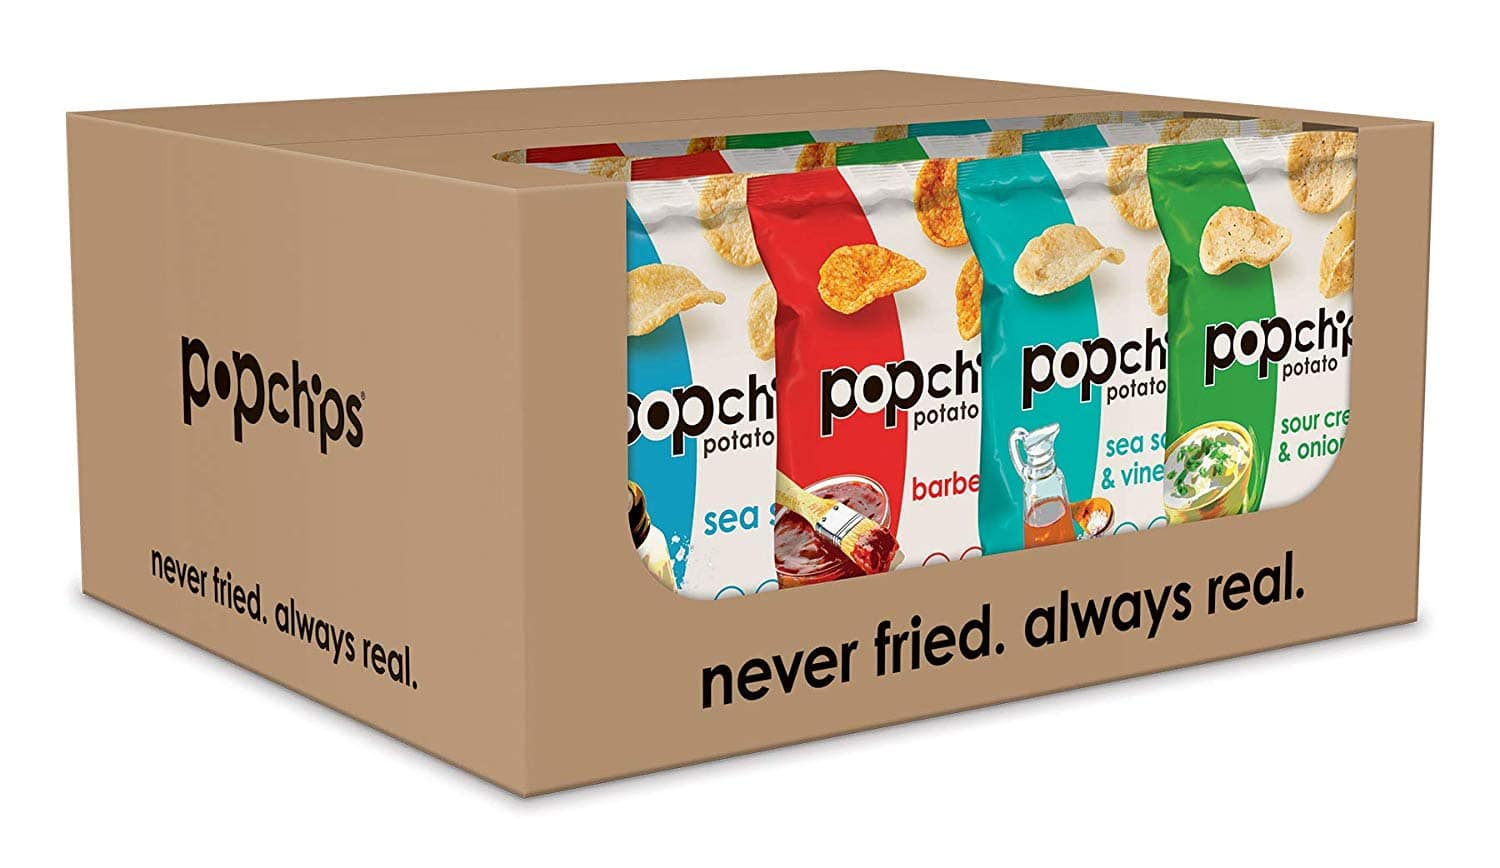 24-Count Popchips Potato Chips, Variety Pack $10.63 5% or $7.27 w/30% Everyday